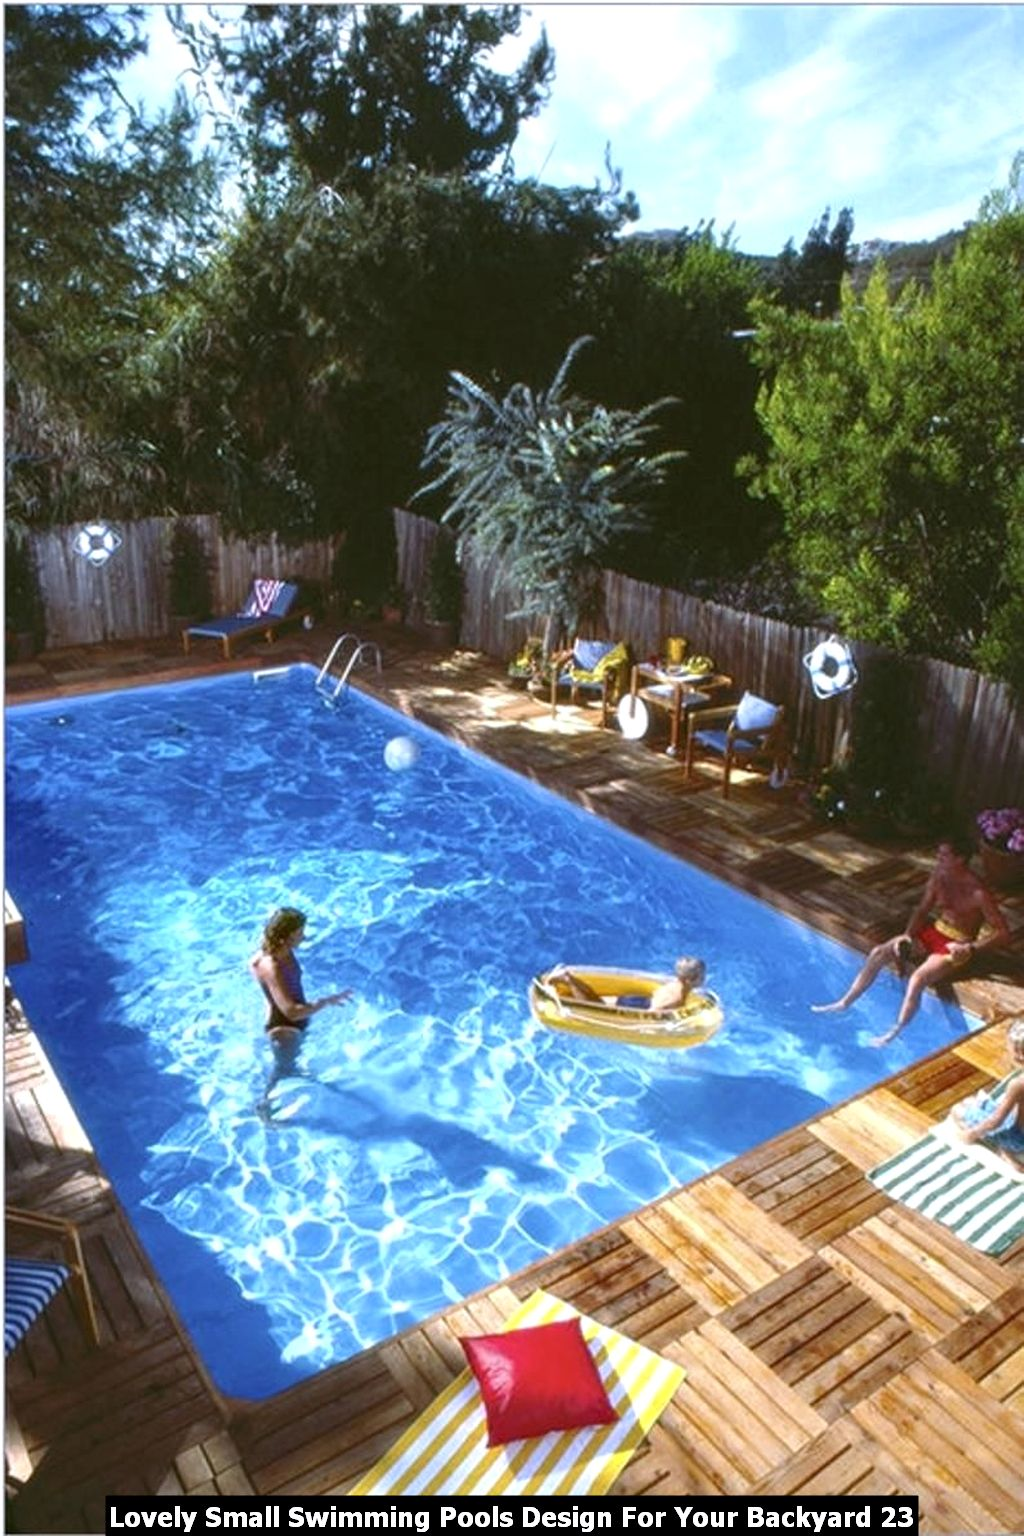 Lovely Small Swimming Pools Design For Your Backyard 23